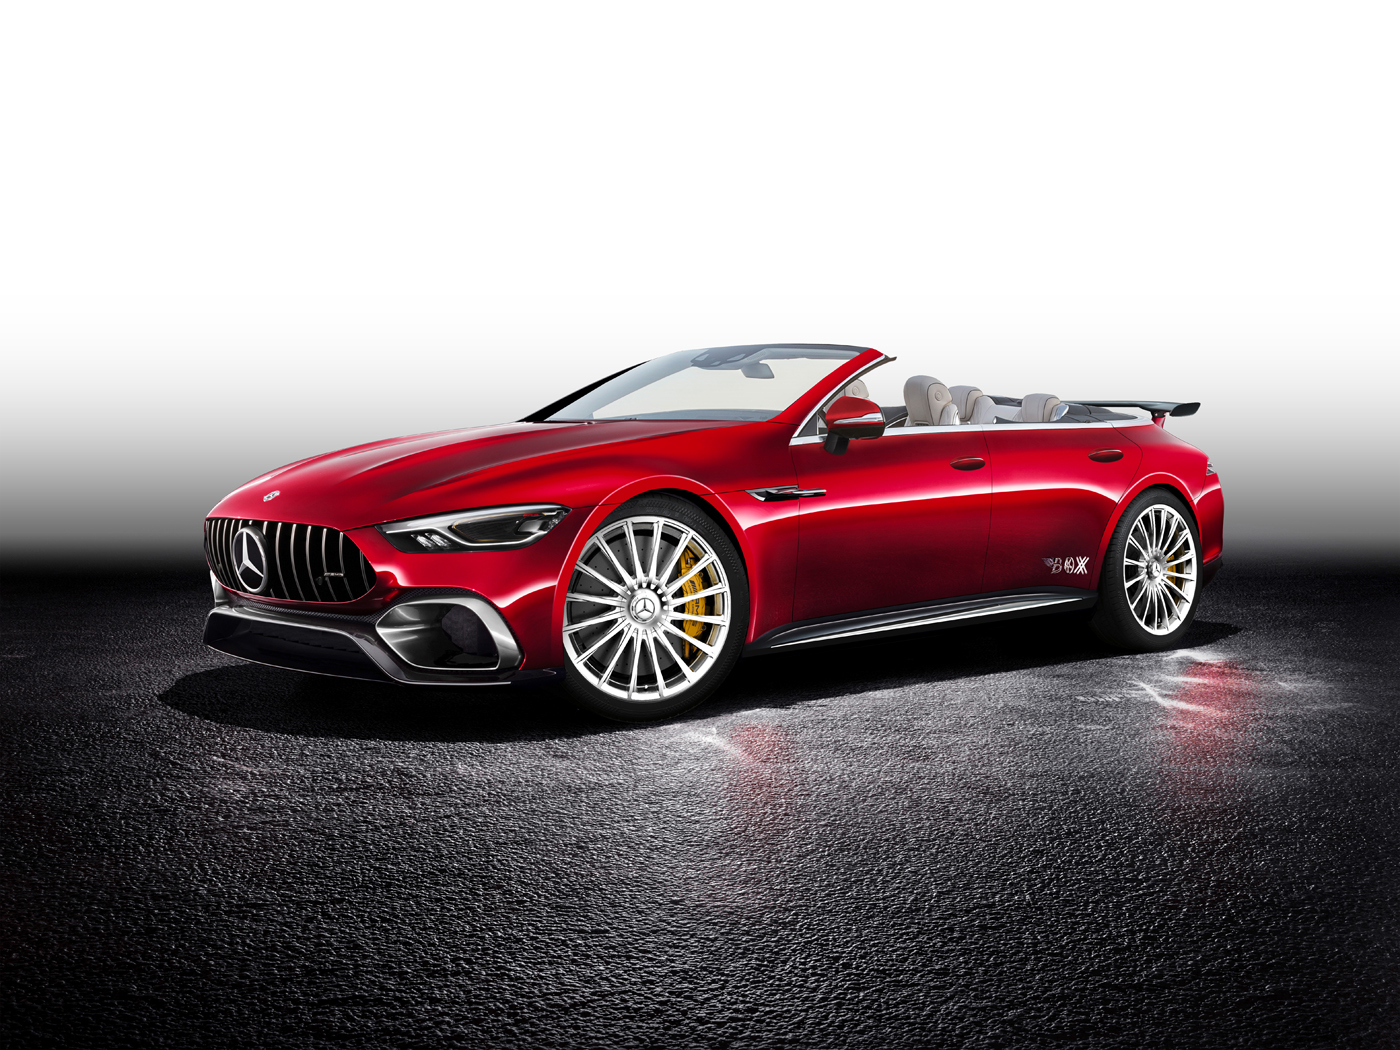 Mercedes Amg Gt Concept Gets Shooting Brake And Cabrio Treatments Mercedesblog